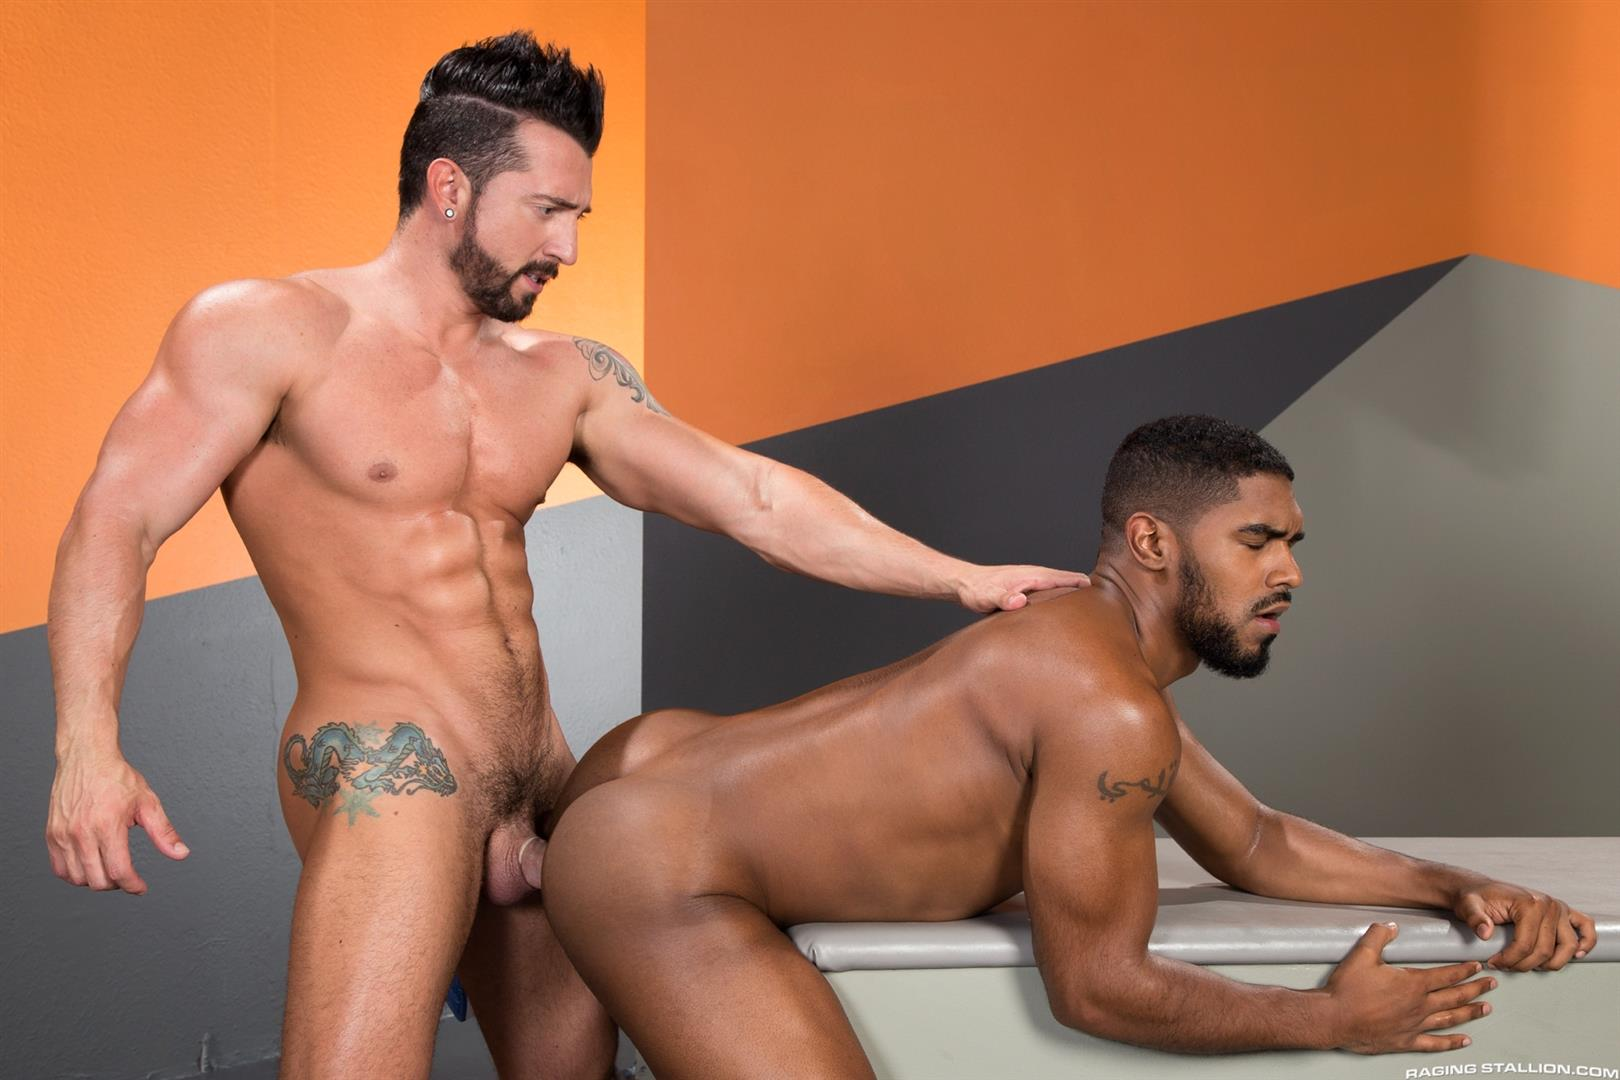 Raging-Stallion-Jimmy-Durano-and-XL-Interracial-Gay-Sex-Video-Free-12 Jimmy Durano Fucks XL's Black Ass With His Big Fat Cock